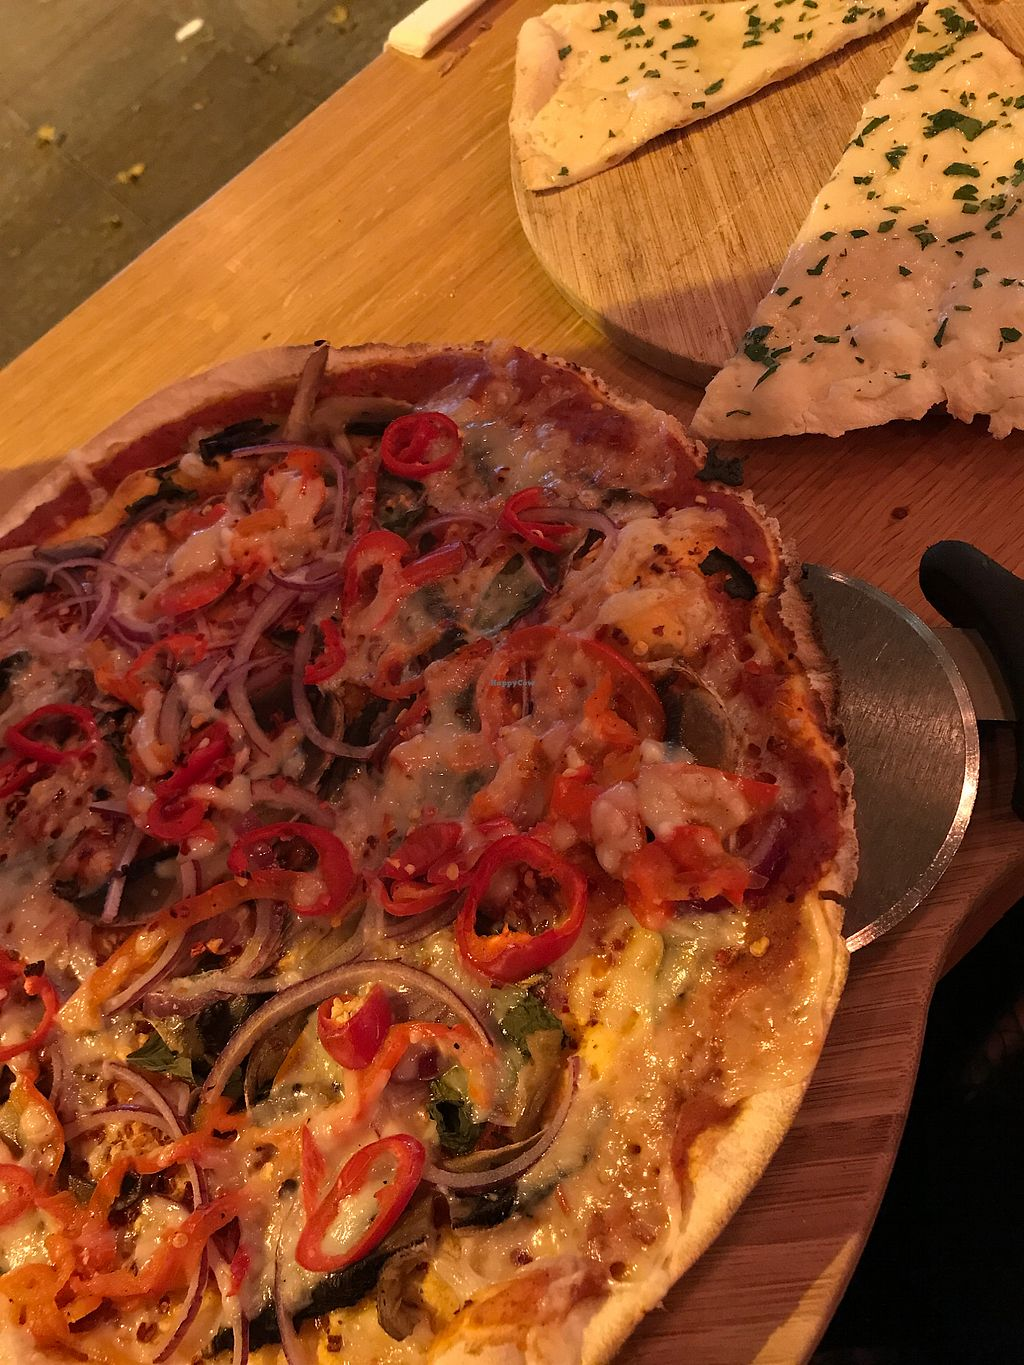 """Photo of The Stable  by <a href=""""/members/profile/LucyRoadhouse"""">LucyRoadhouse</a> <br/>Spicy Vegan Pizza <br/> November 26, 2017  - <a href='/contact/abuse/image/87614/329448'>Report</a>"""